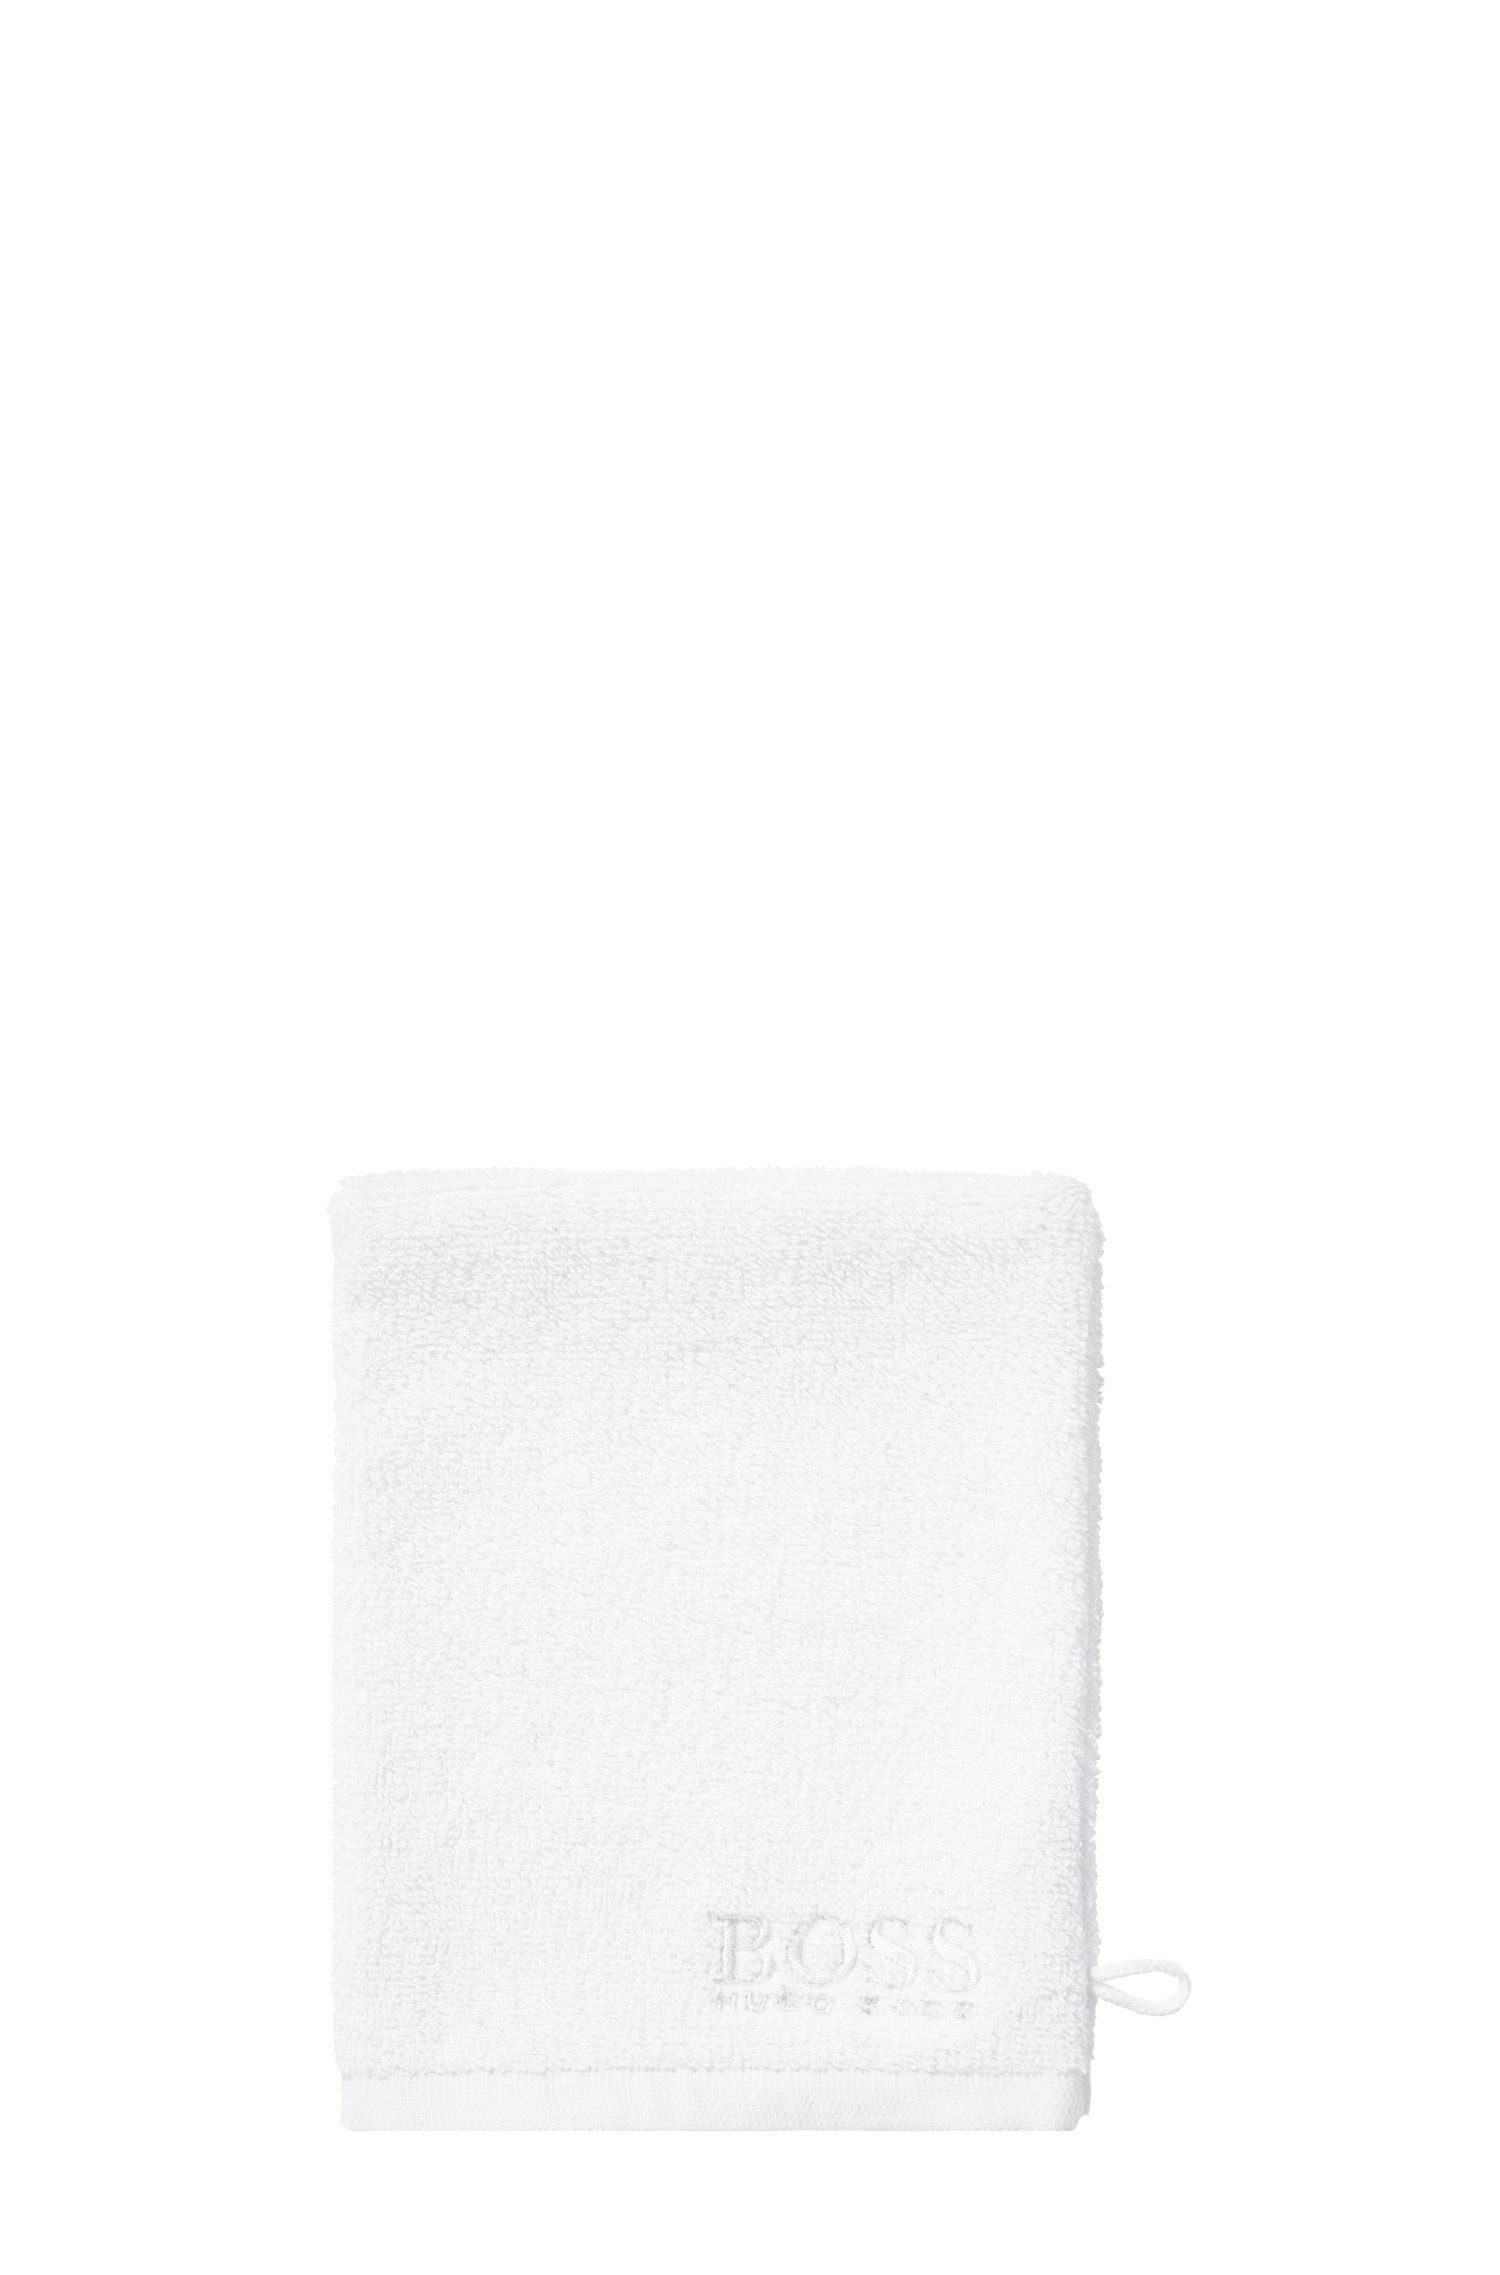 Wash glove 'PLAIN' in cotton